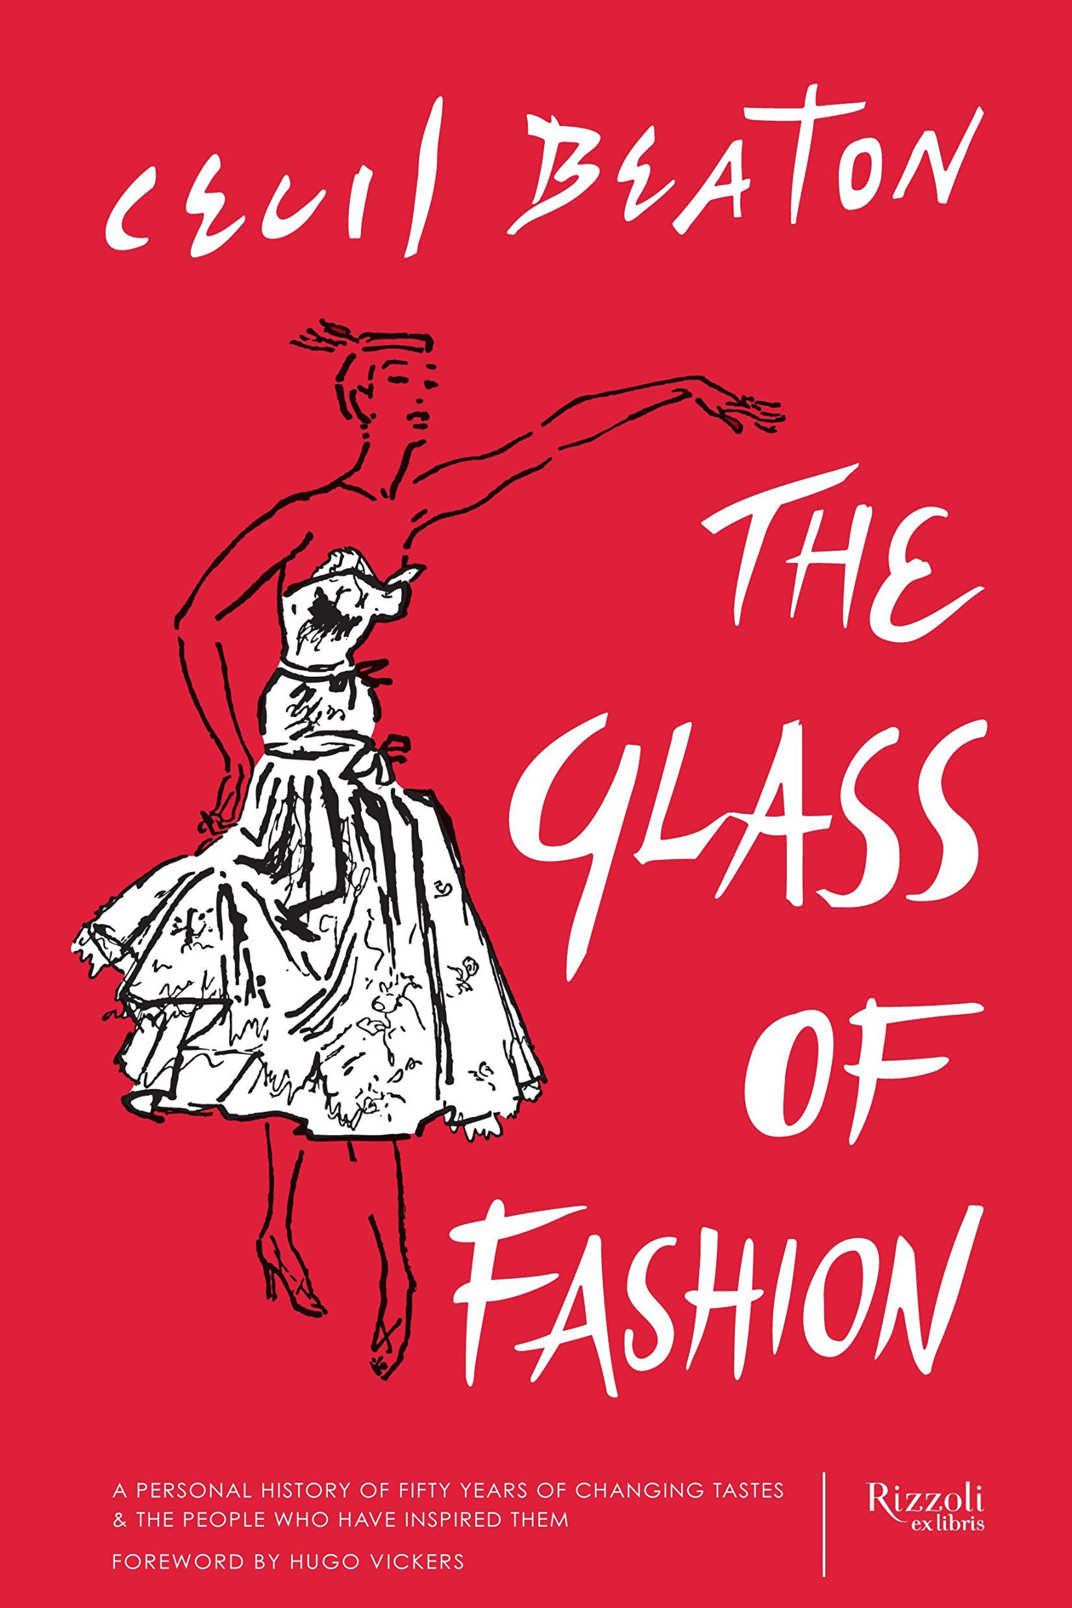 The Glass Of Fashionby Cecil Beaton